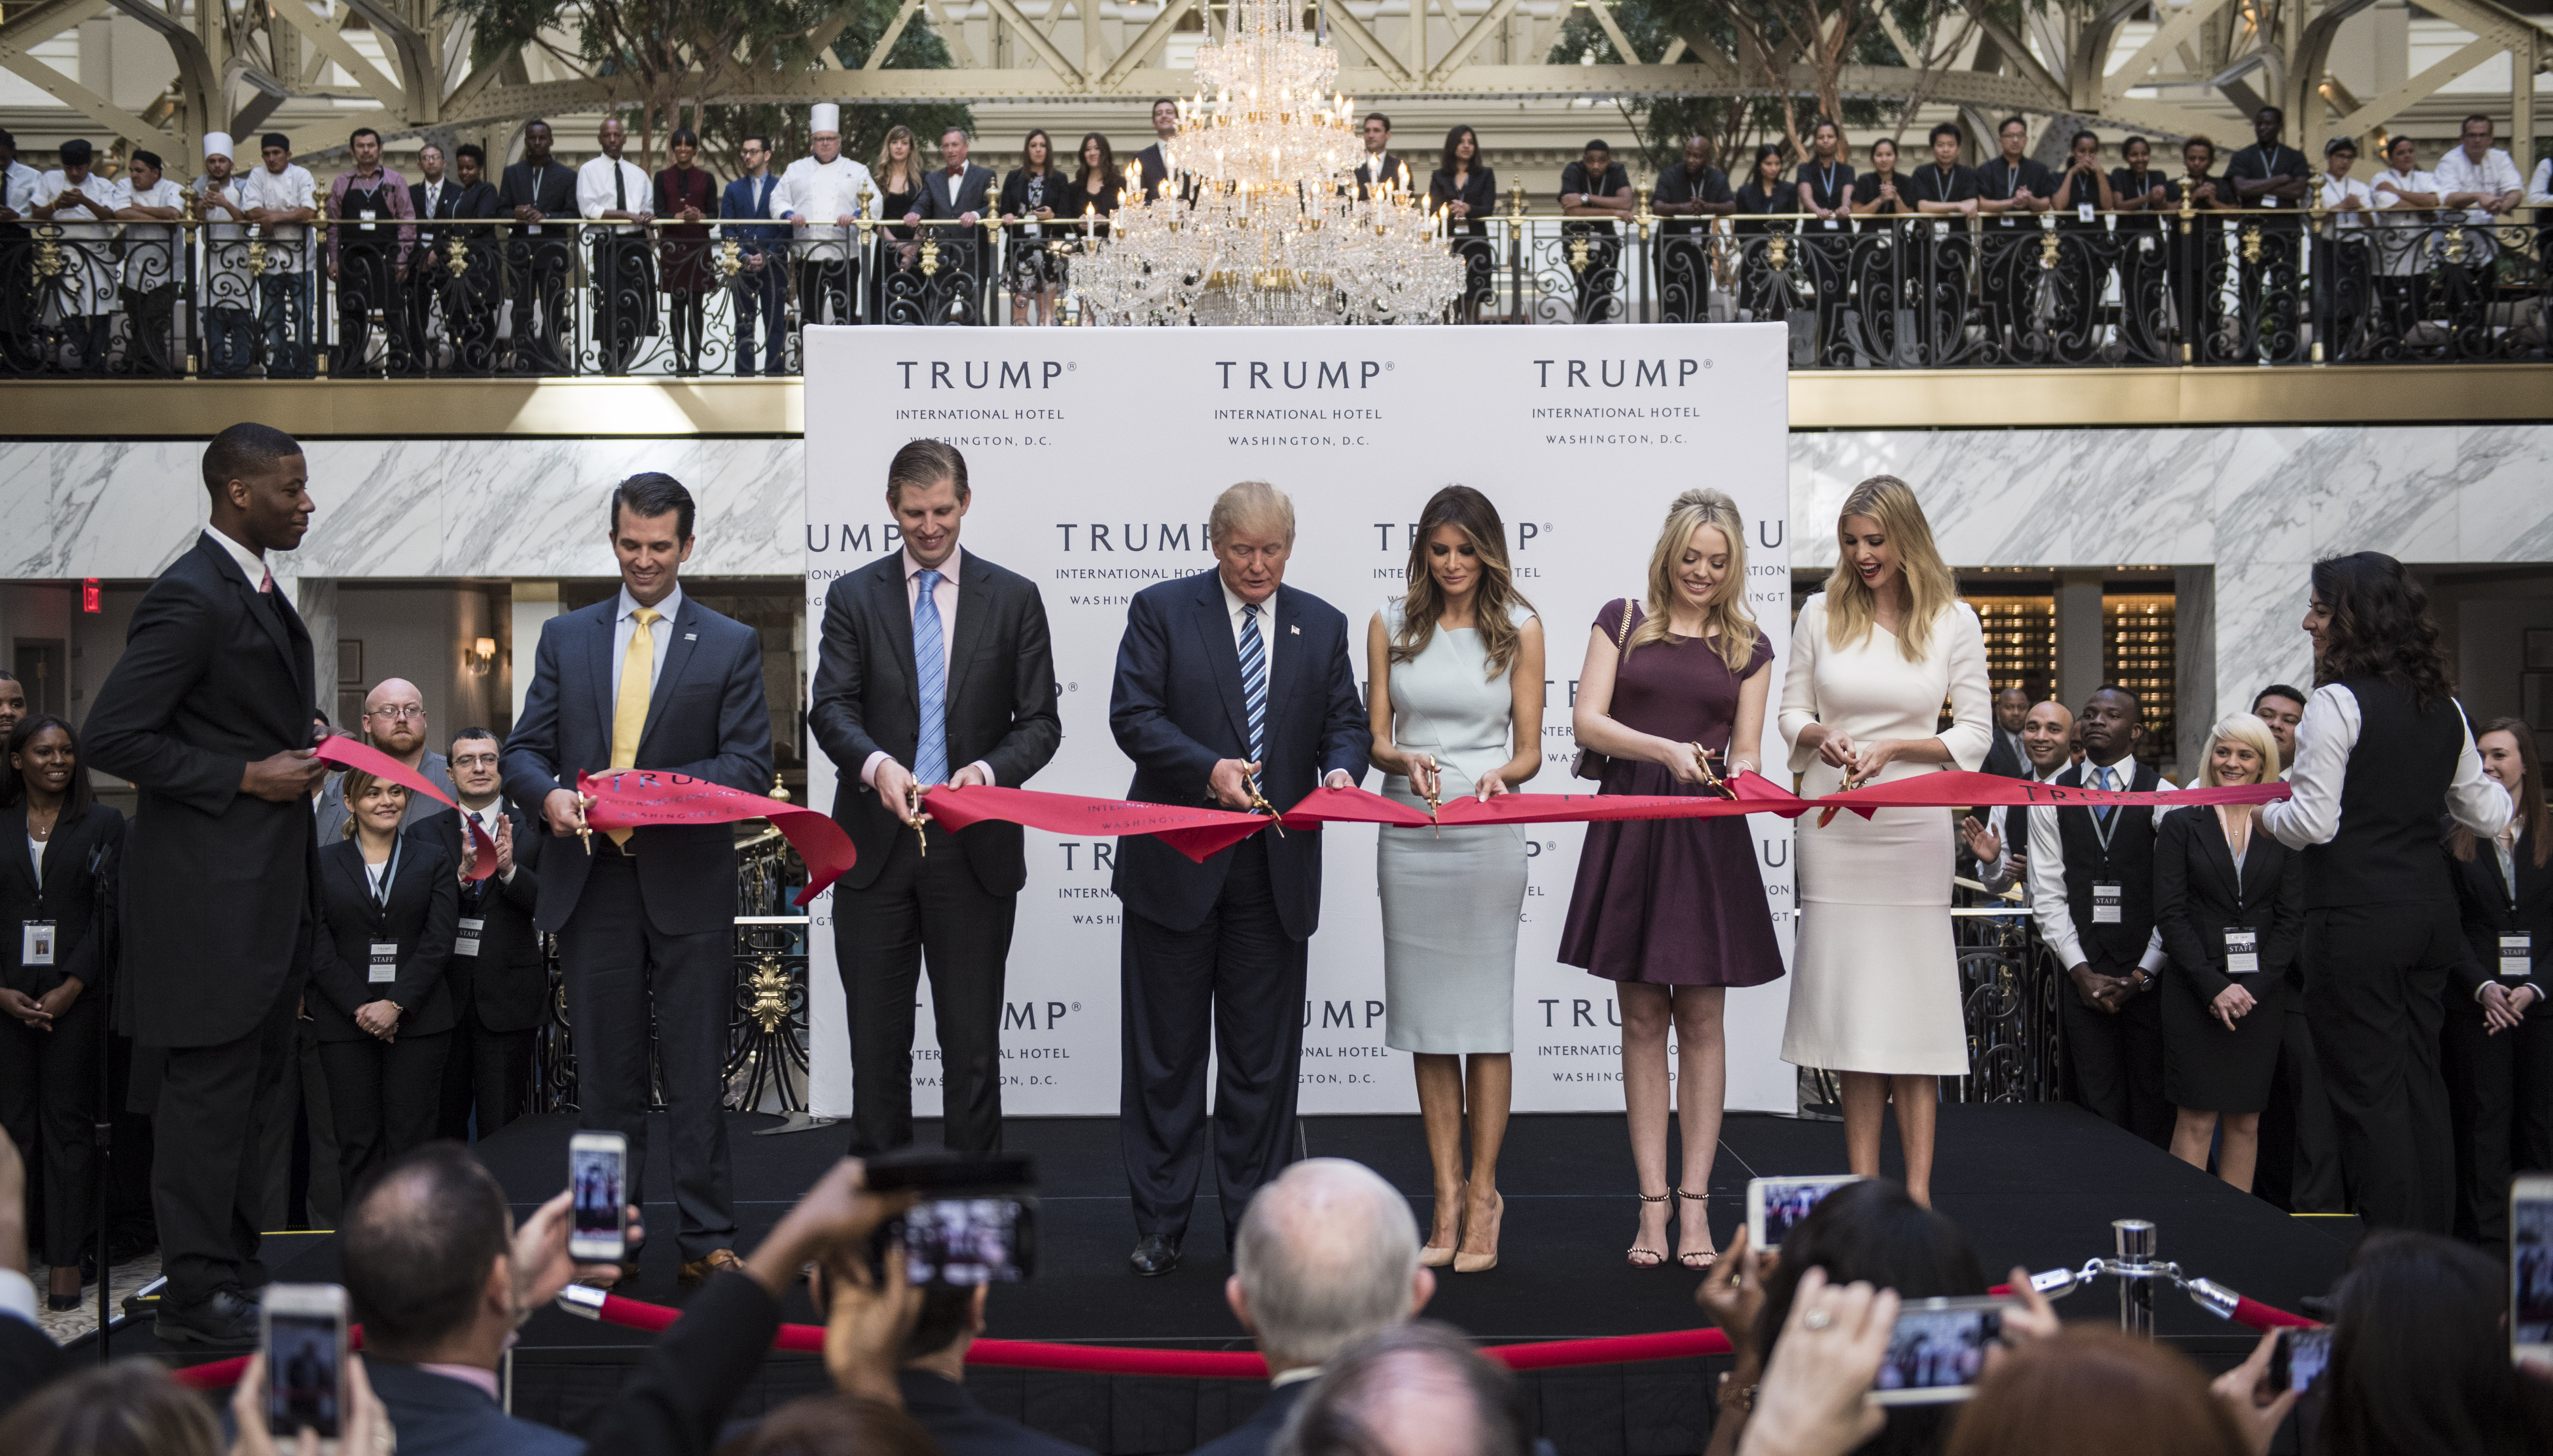 Lawyers: Trump has to sell DC hotel before taking office